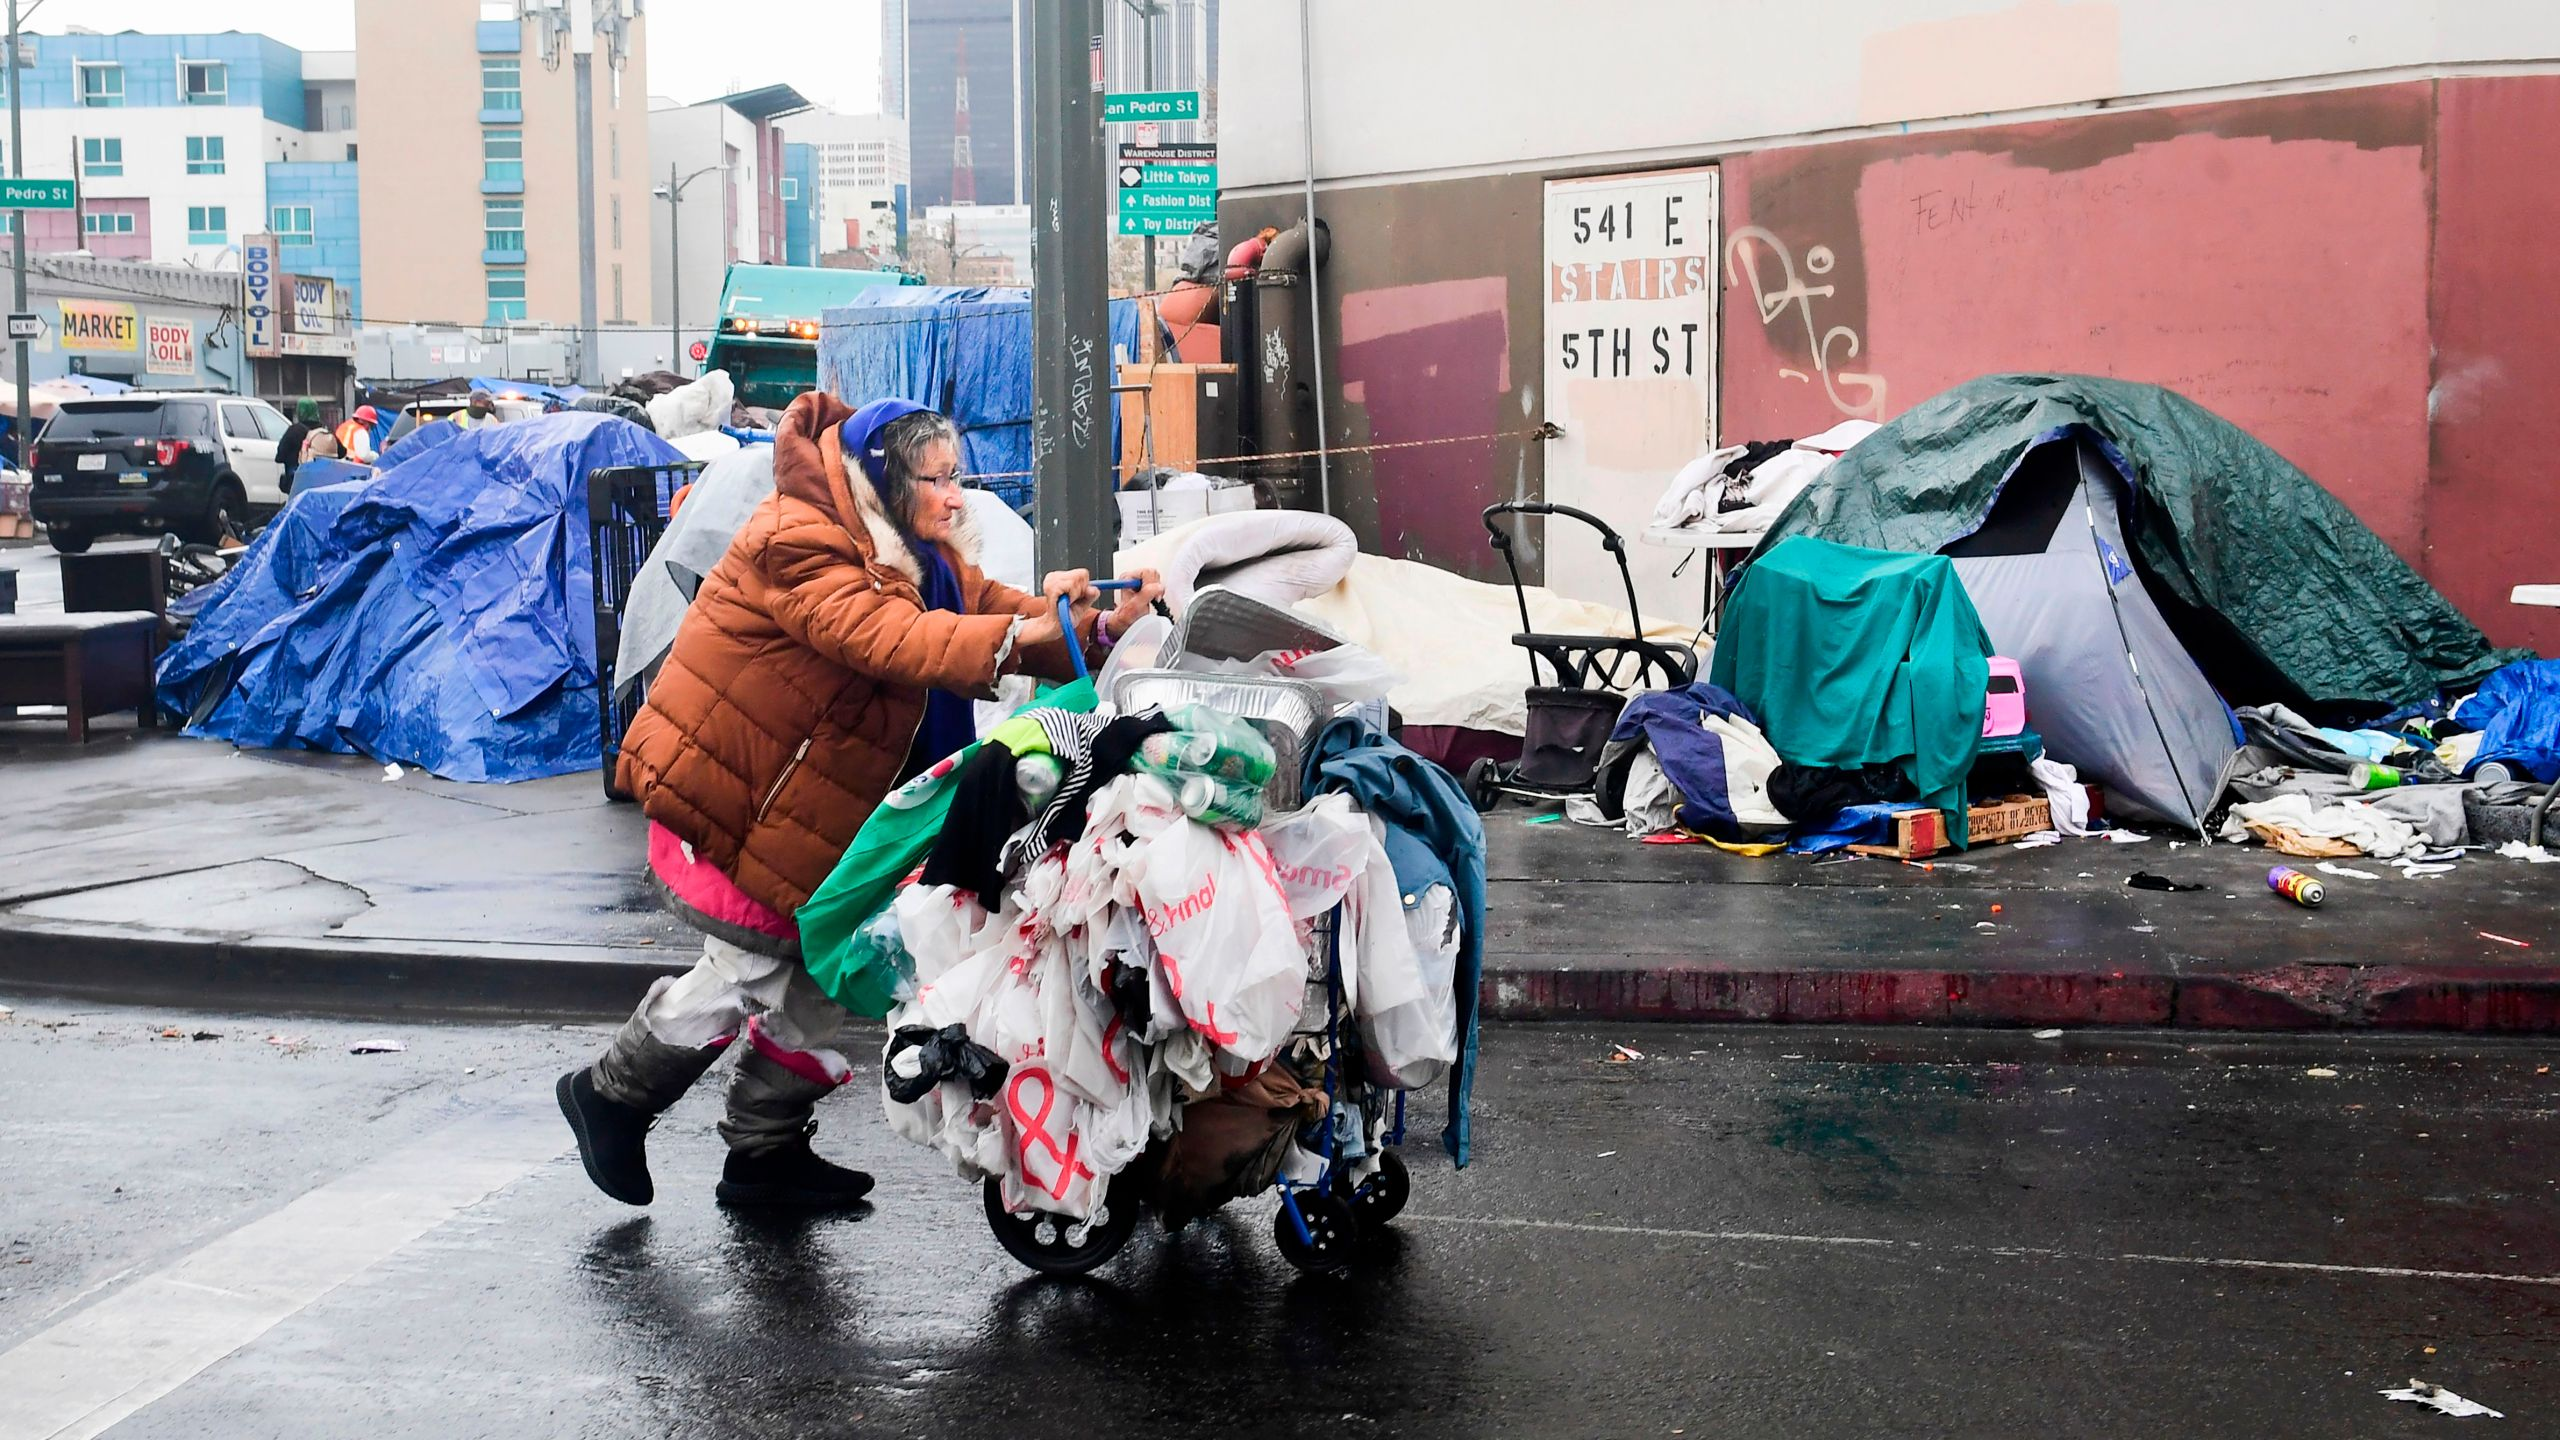 A homeless woman pushes her belongings past a row of tents on the streets of Los Angeles on Feb. 1, 2021. (Frederic J. Brown / AFP / Getty Images)